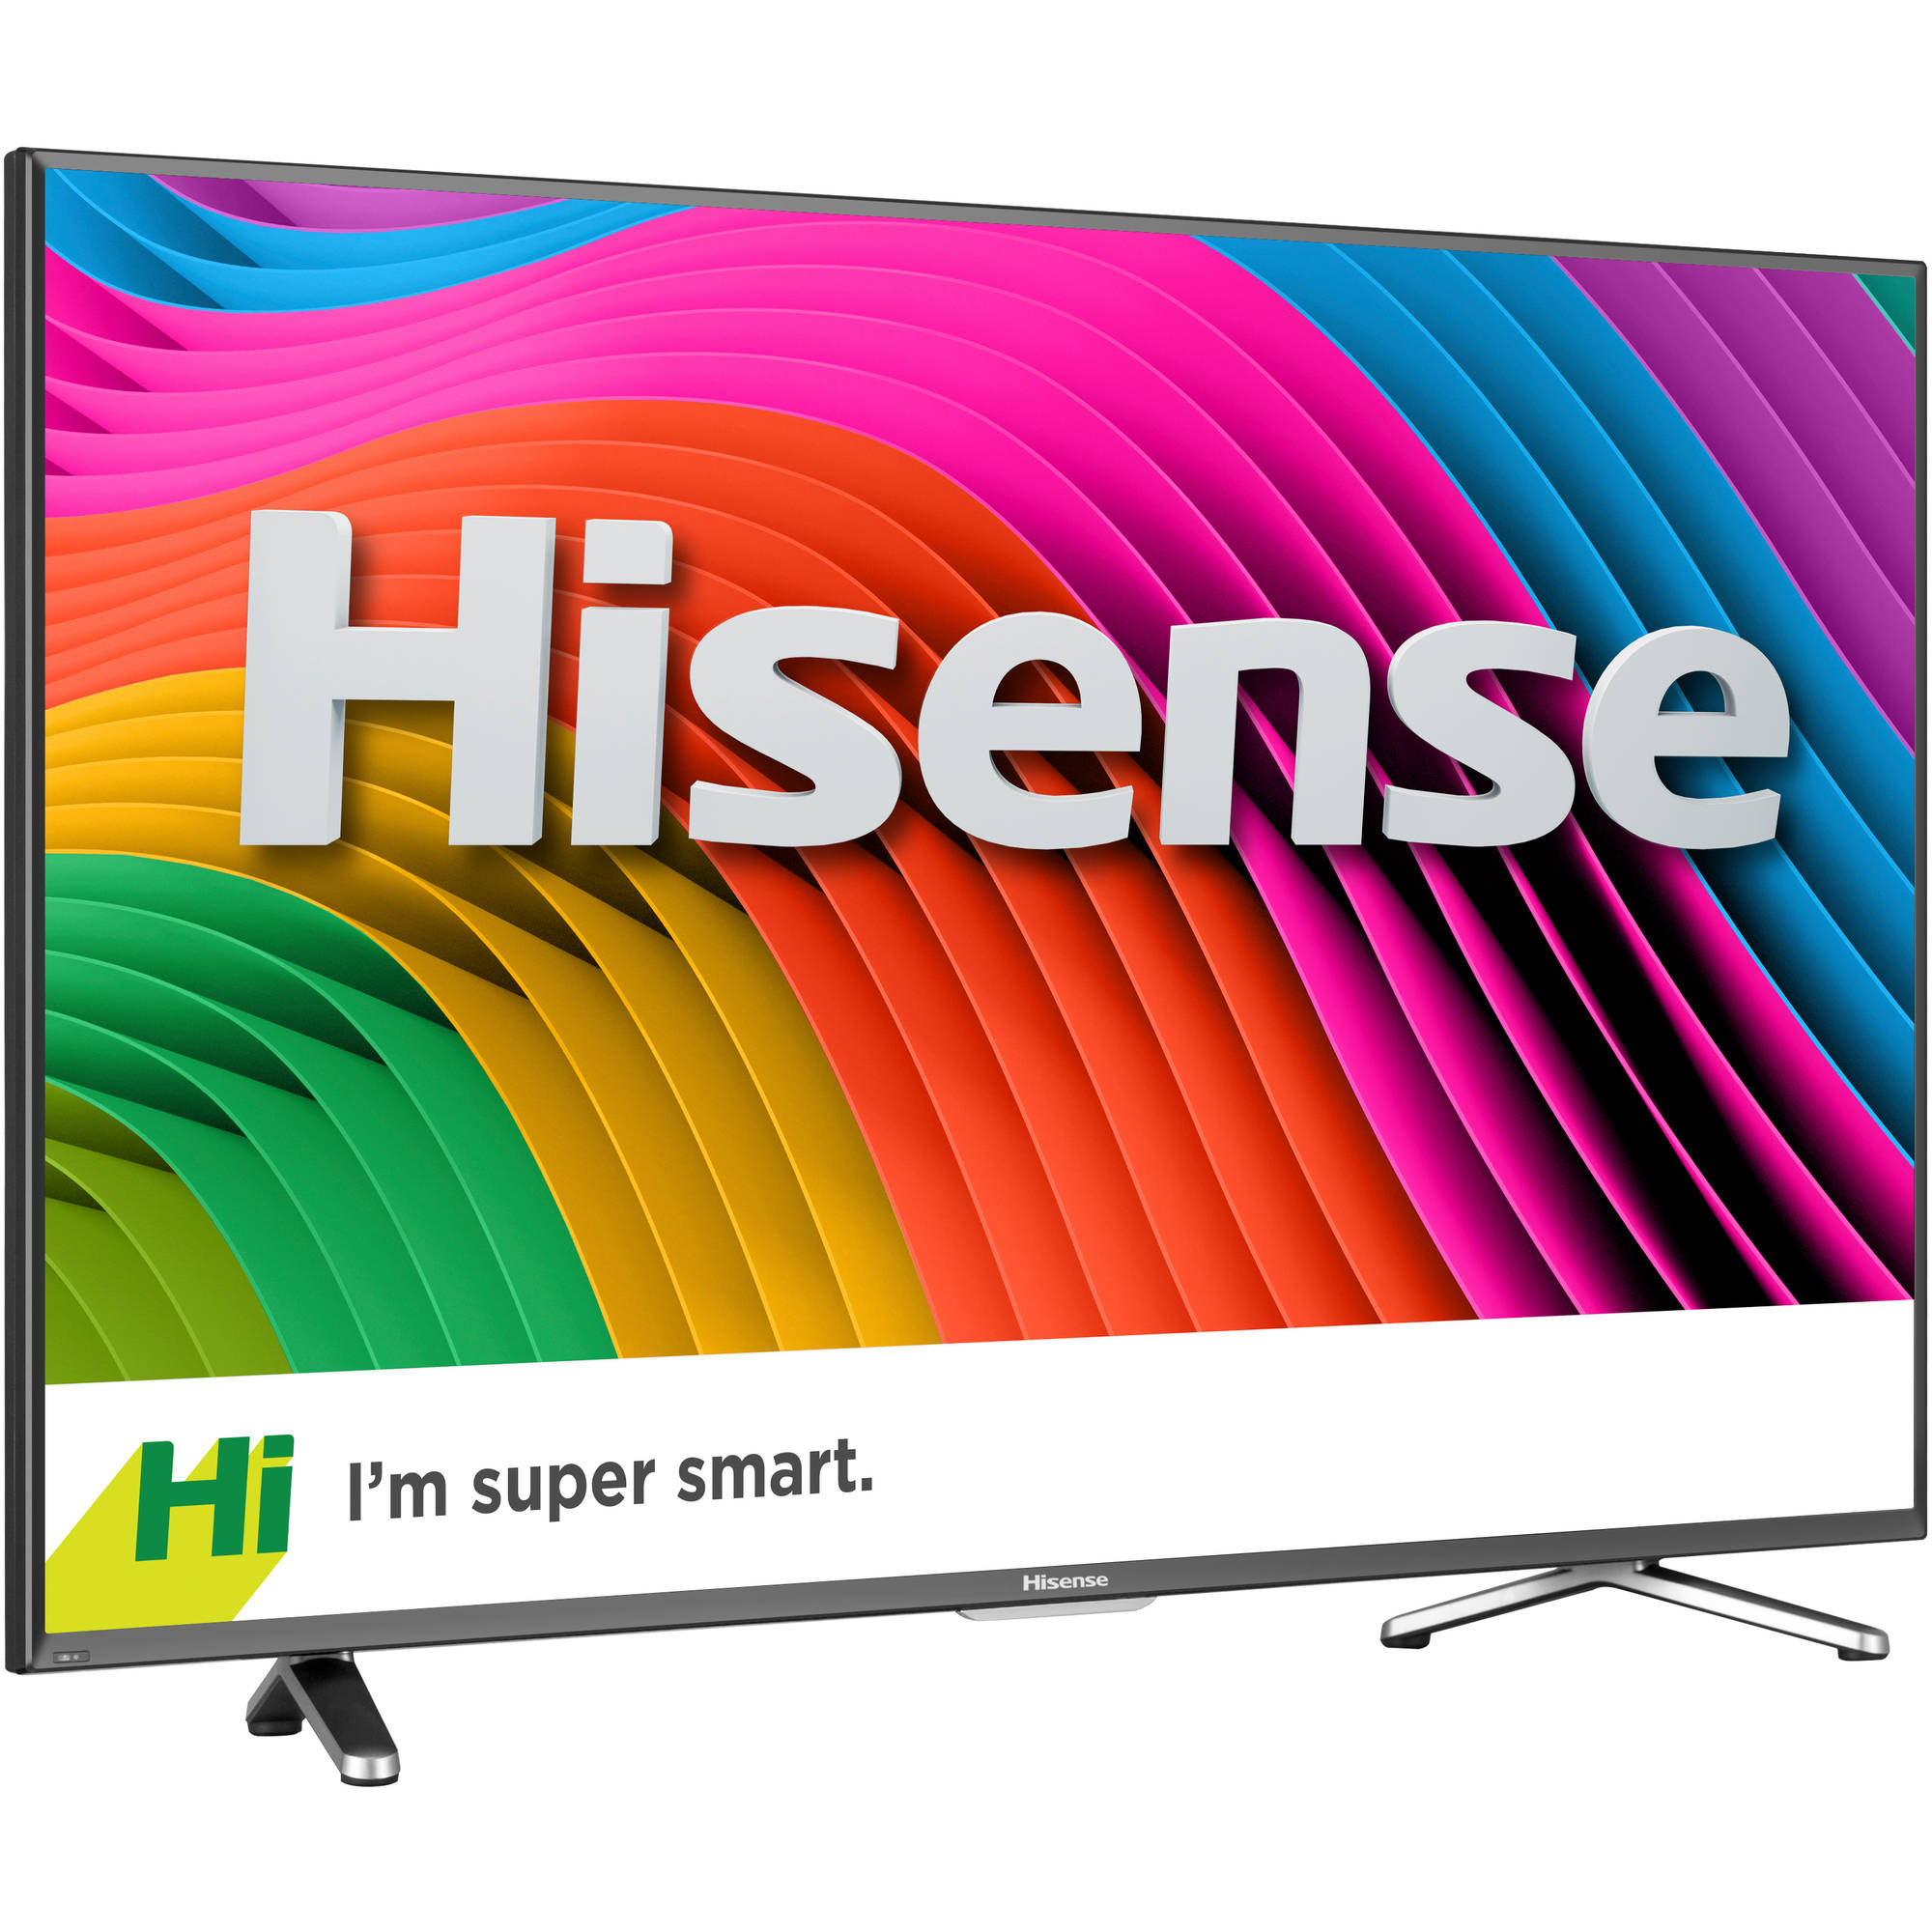 hight resolution of hisense 50h7gb 50 4k ultra hd 2160p 120hz led smart hdtv 4k x 2k hisense tv retailers hisense led tv schematic diagram